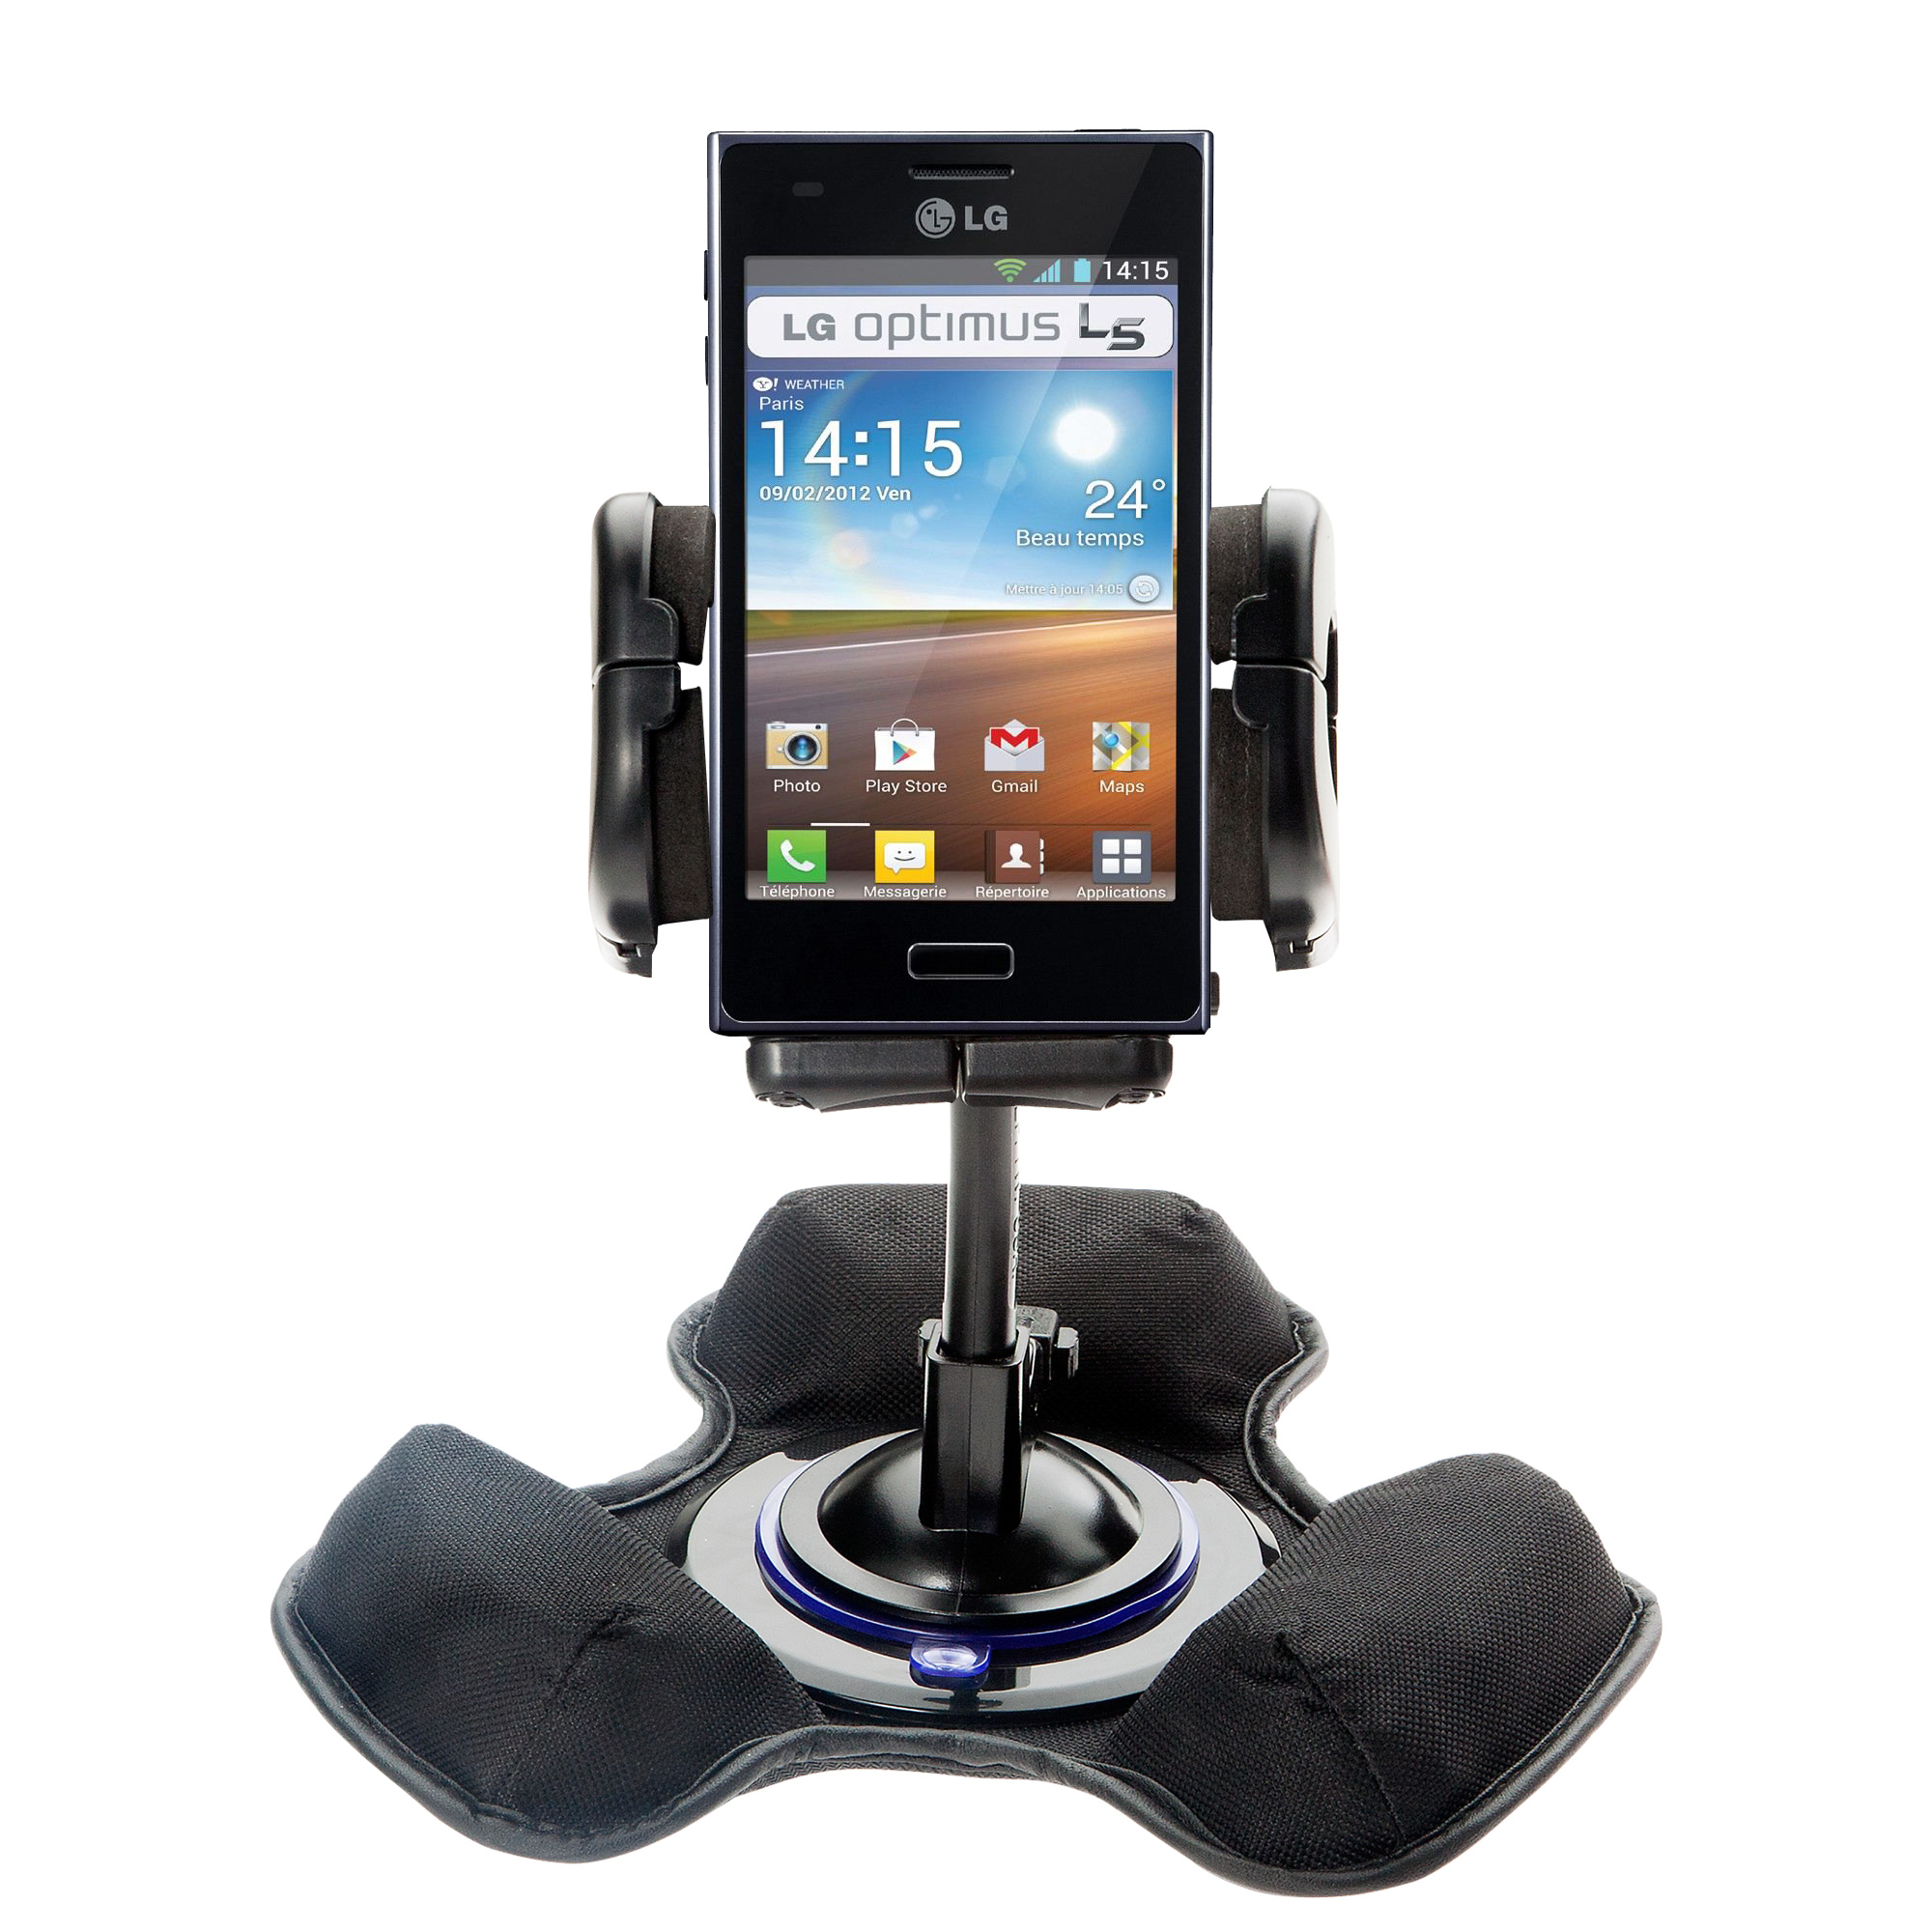 Dash and Windshield Holder compatible with the LG Optimus L5